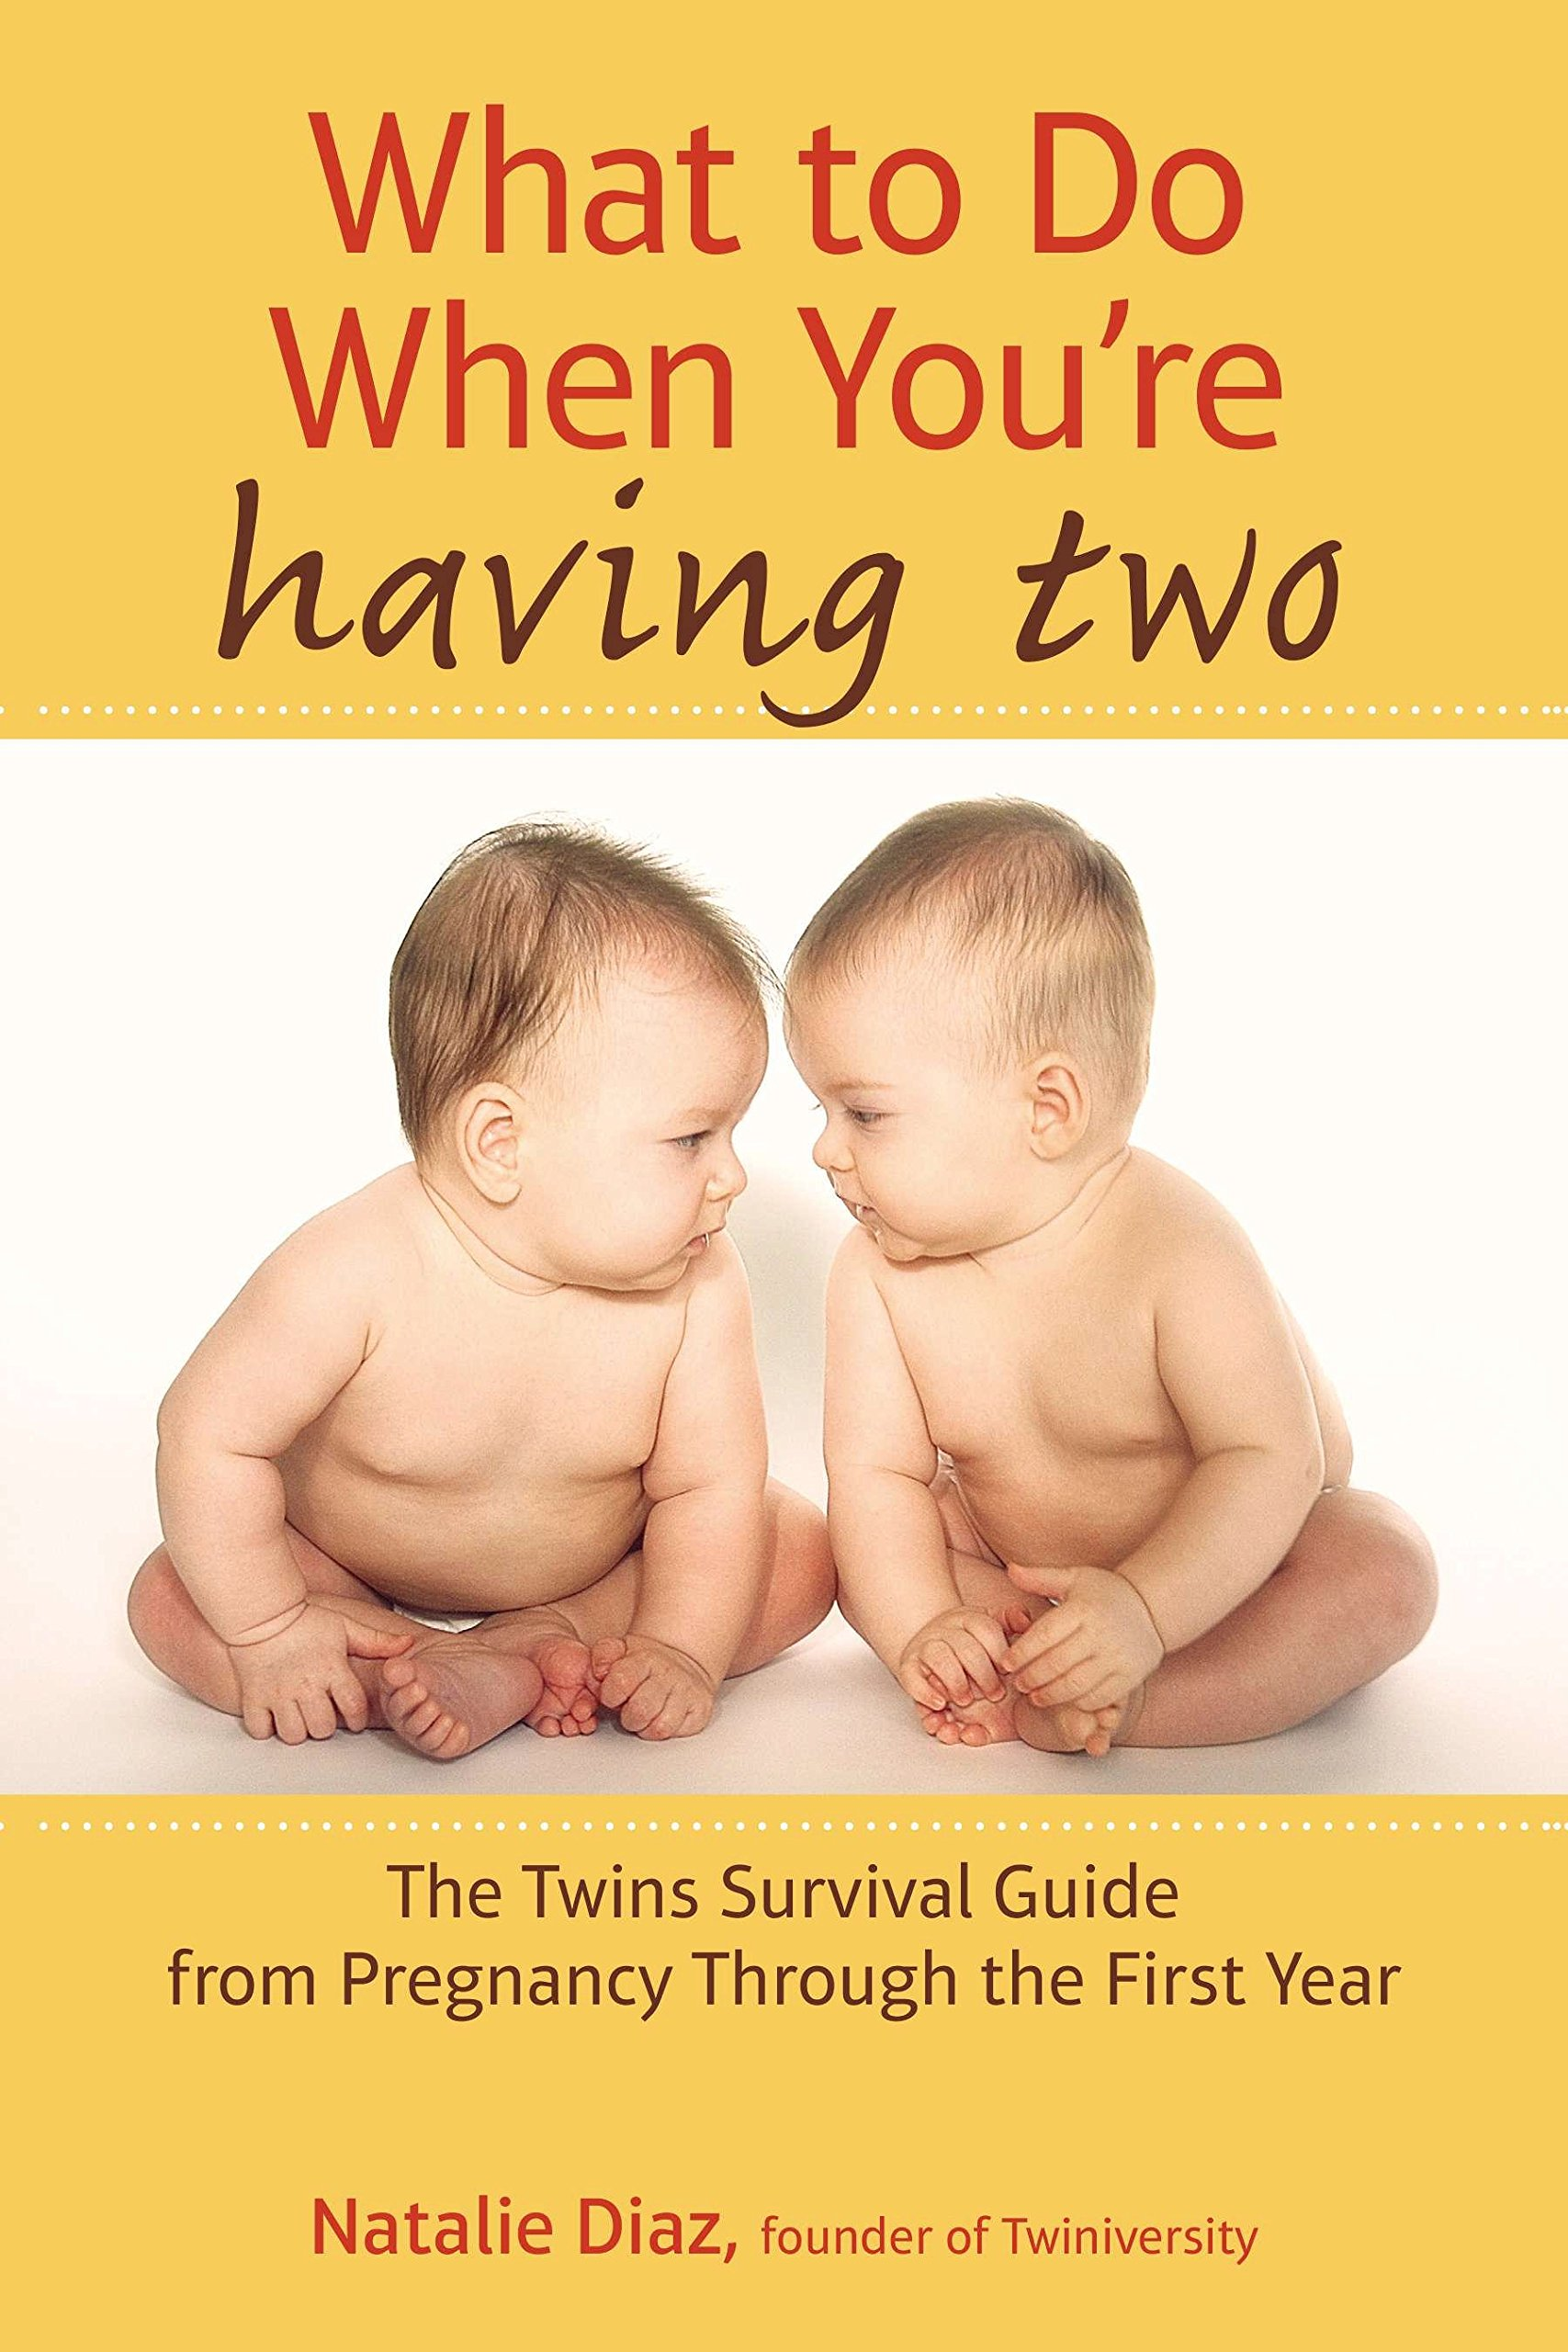 What To Do When Youu0027re Having Two: The Twins Survival Guide From Pregnancy  Through The First Year: Amazon.de: Natalie Diaz: Fremdsprachige Bücher